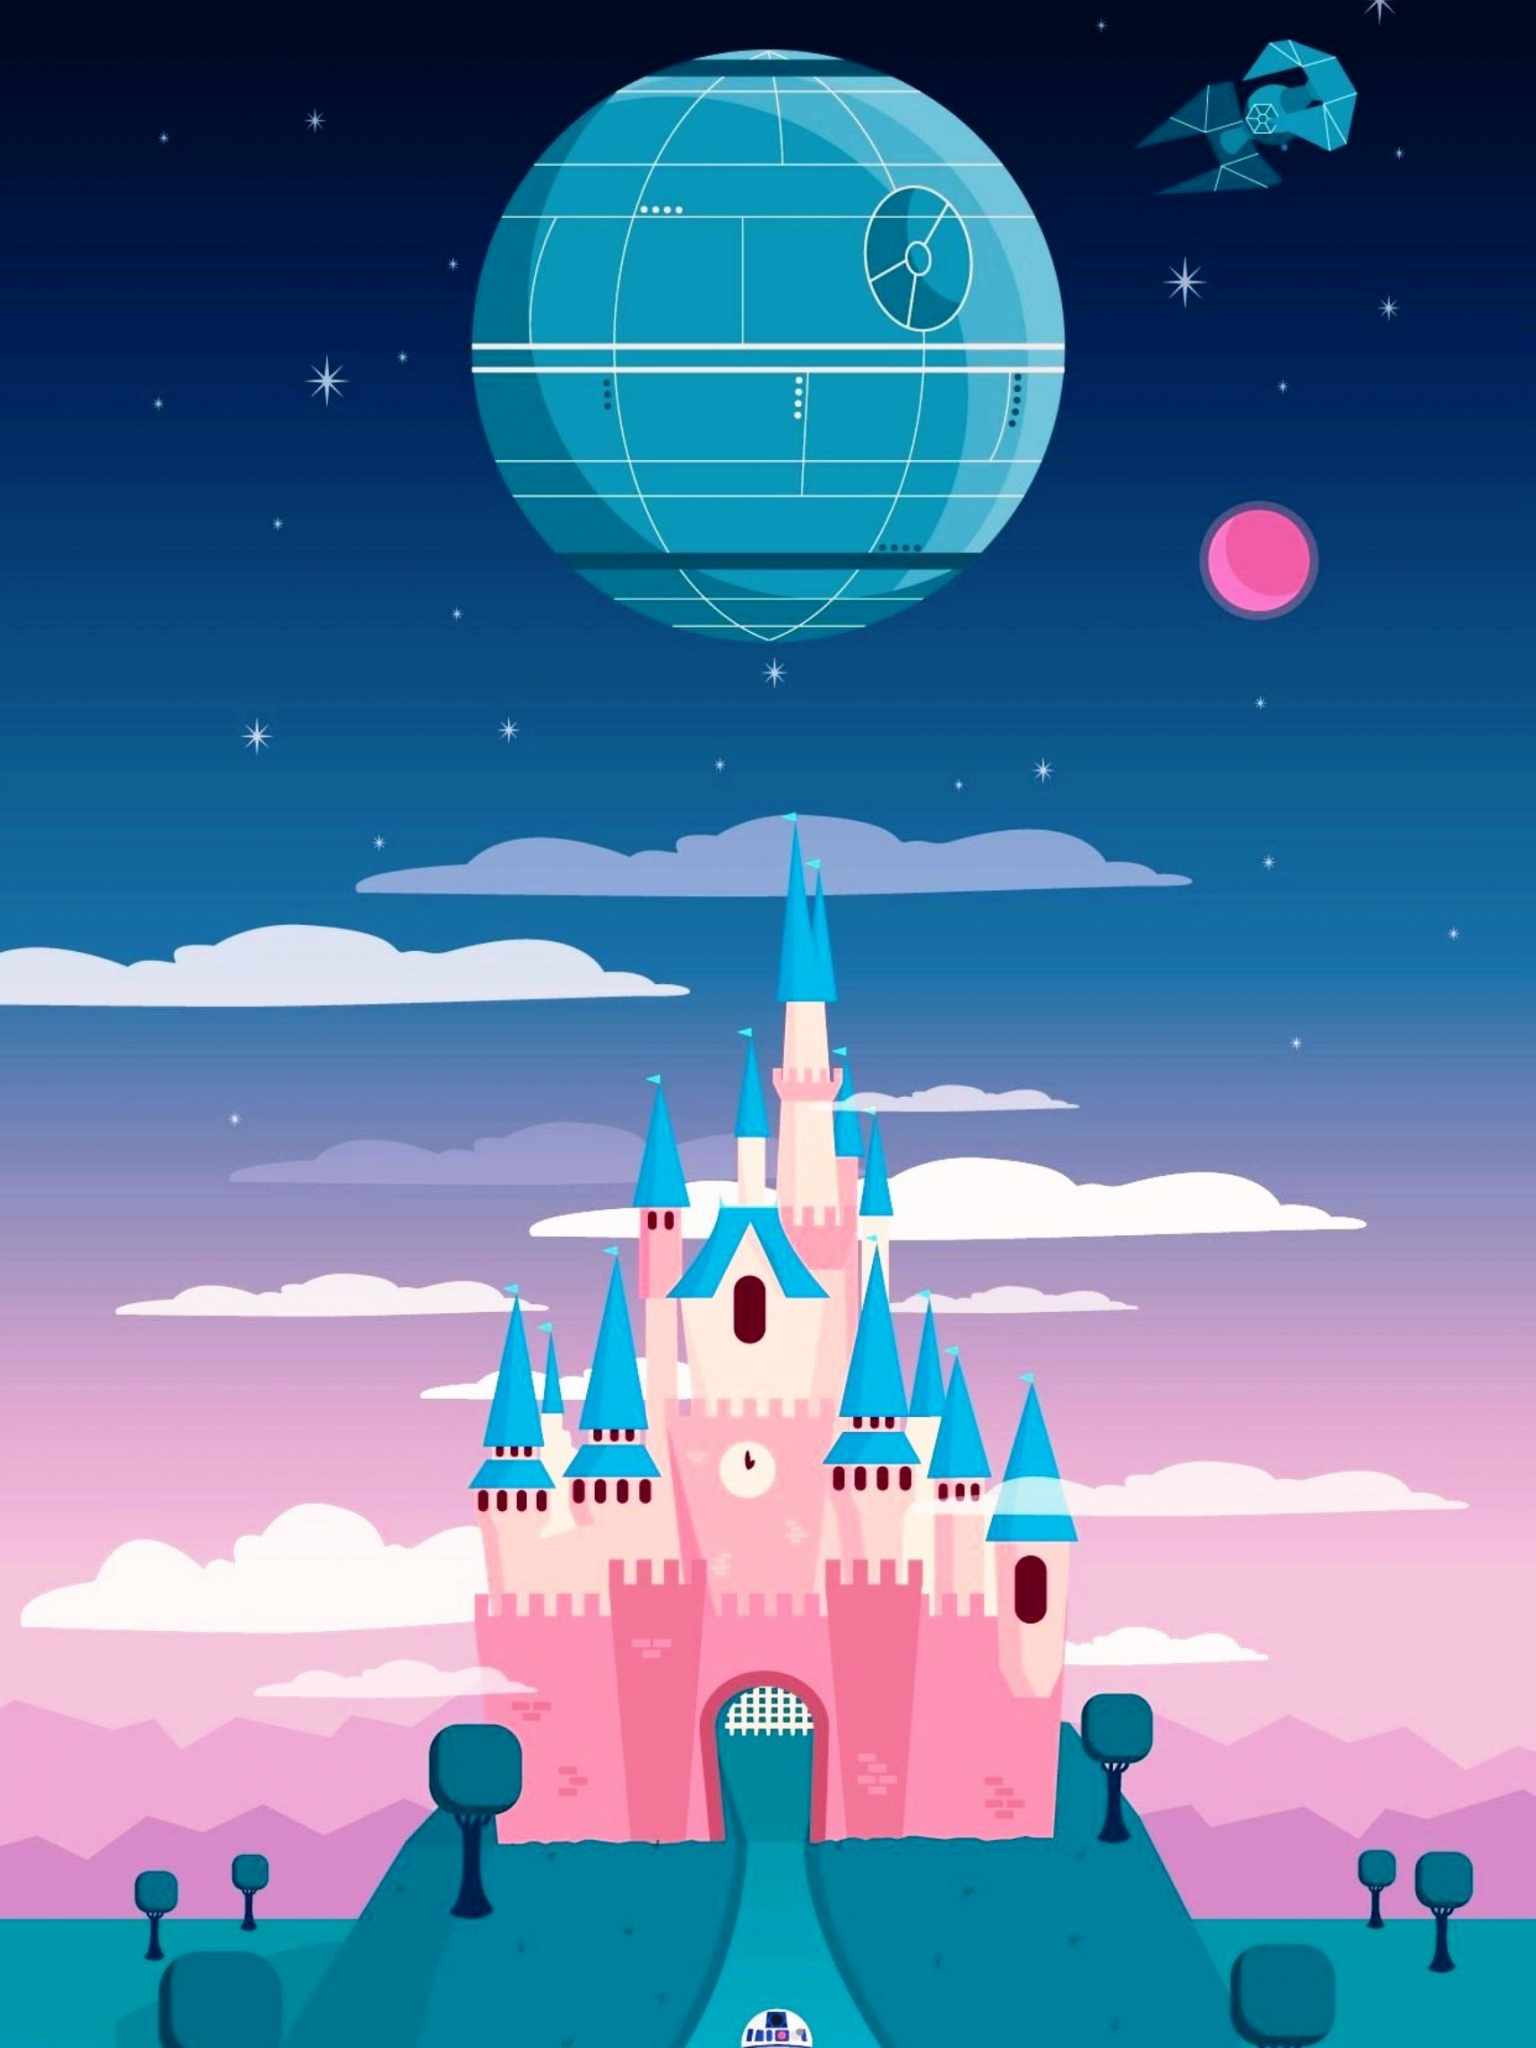 Free Download Best Ideas About Disney Wallpaper Disney Disneyland 1714x3047 For Your Desktop Mobile Tablet Explore 34 Disney Iphone 7 Plus Wallpaper Disney Iphone 7 Plus Wallpaper Iphone 7 Plus Wallpaper Iphone 7 Plus Wallpapers